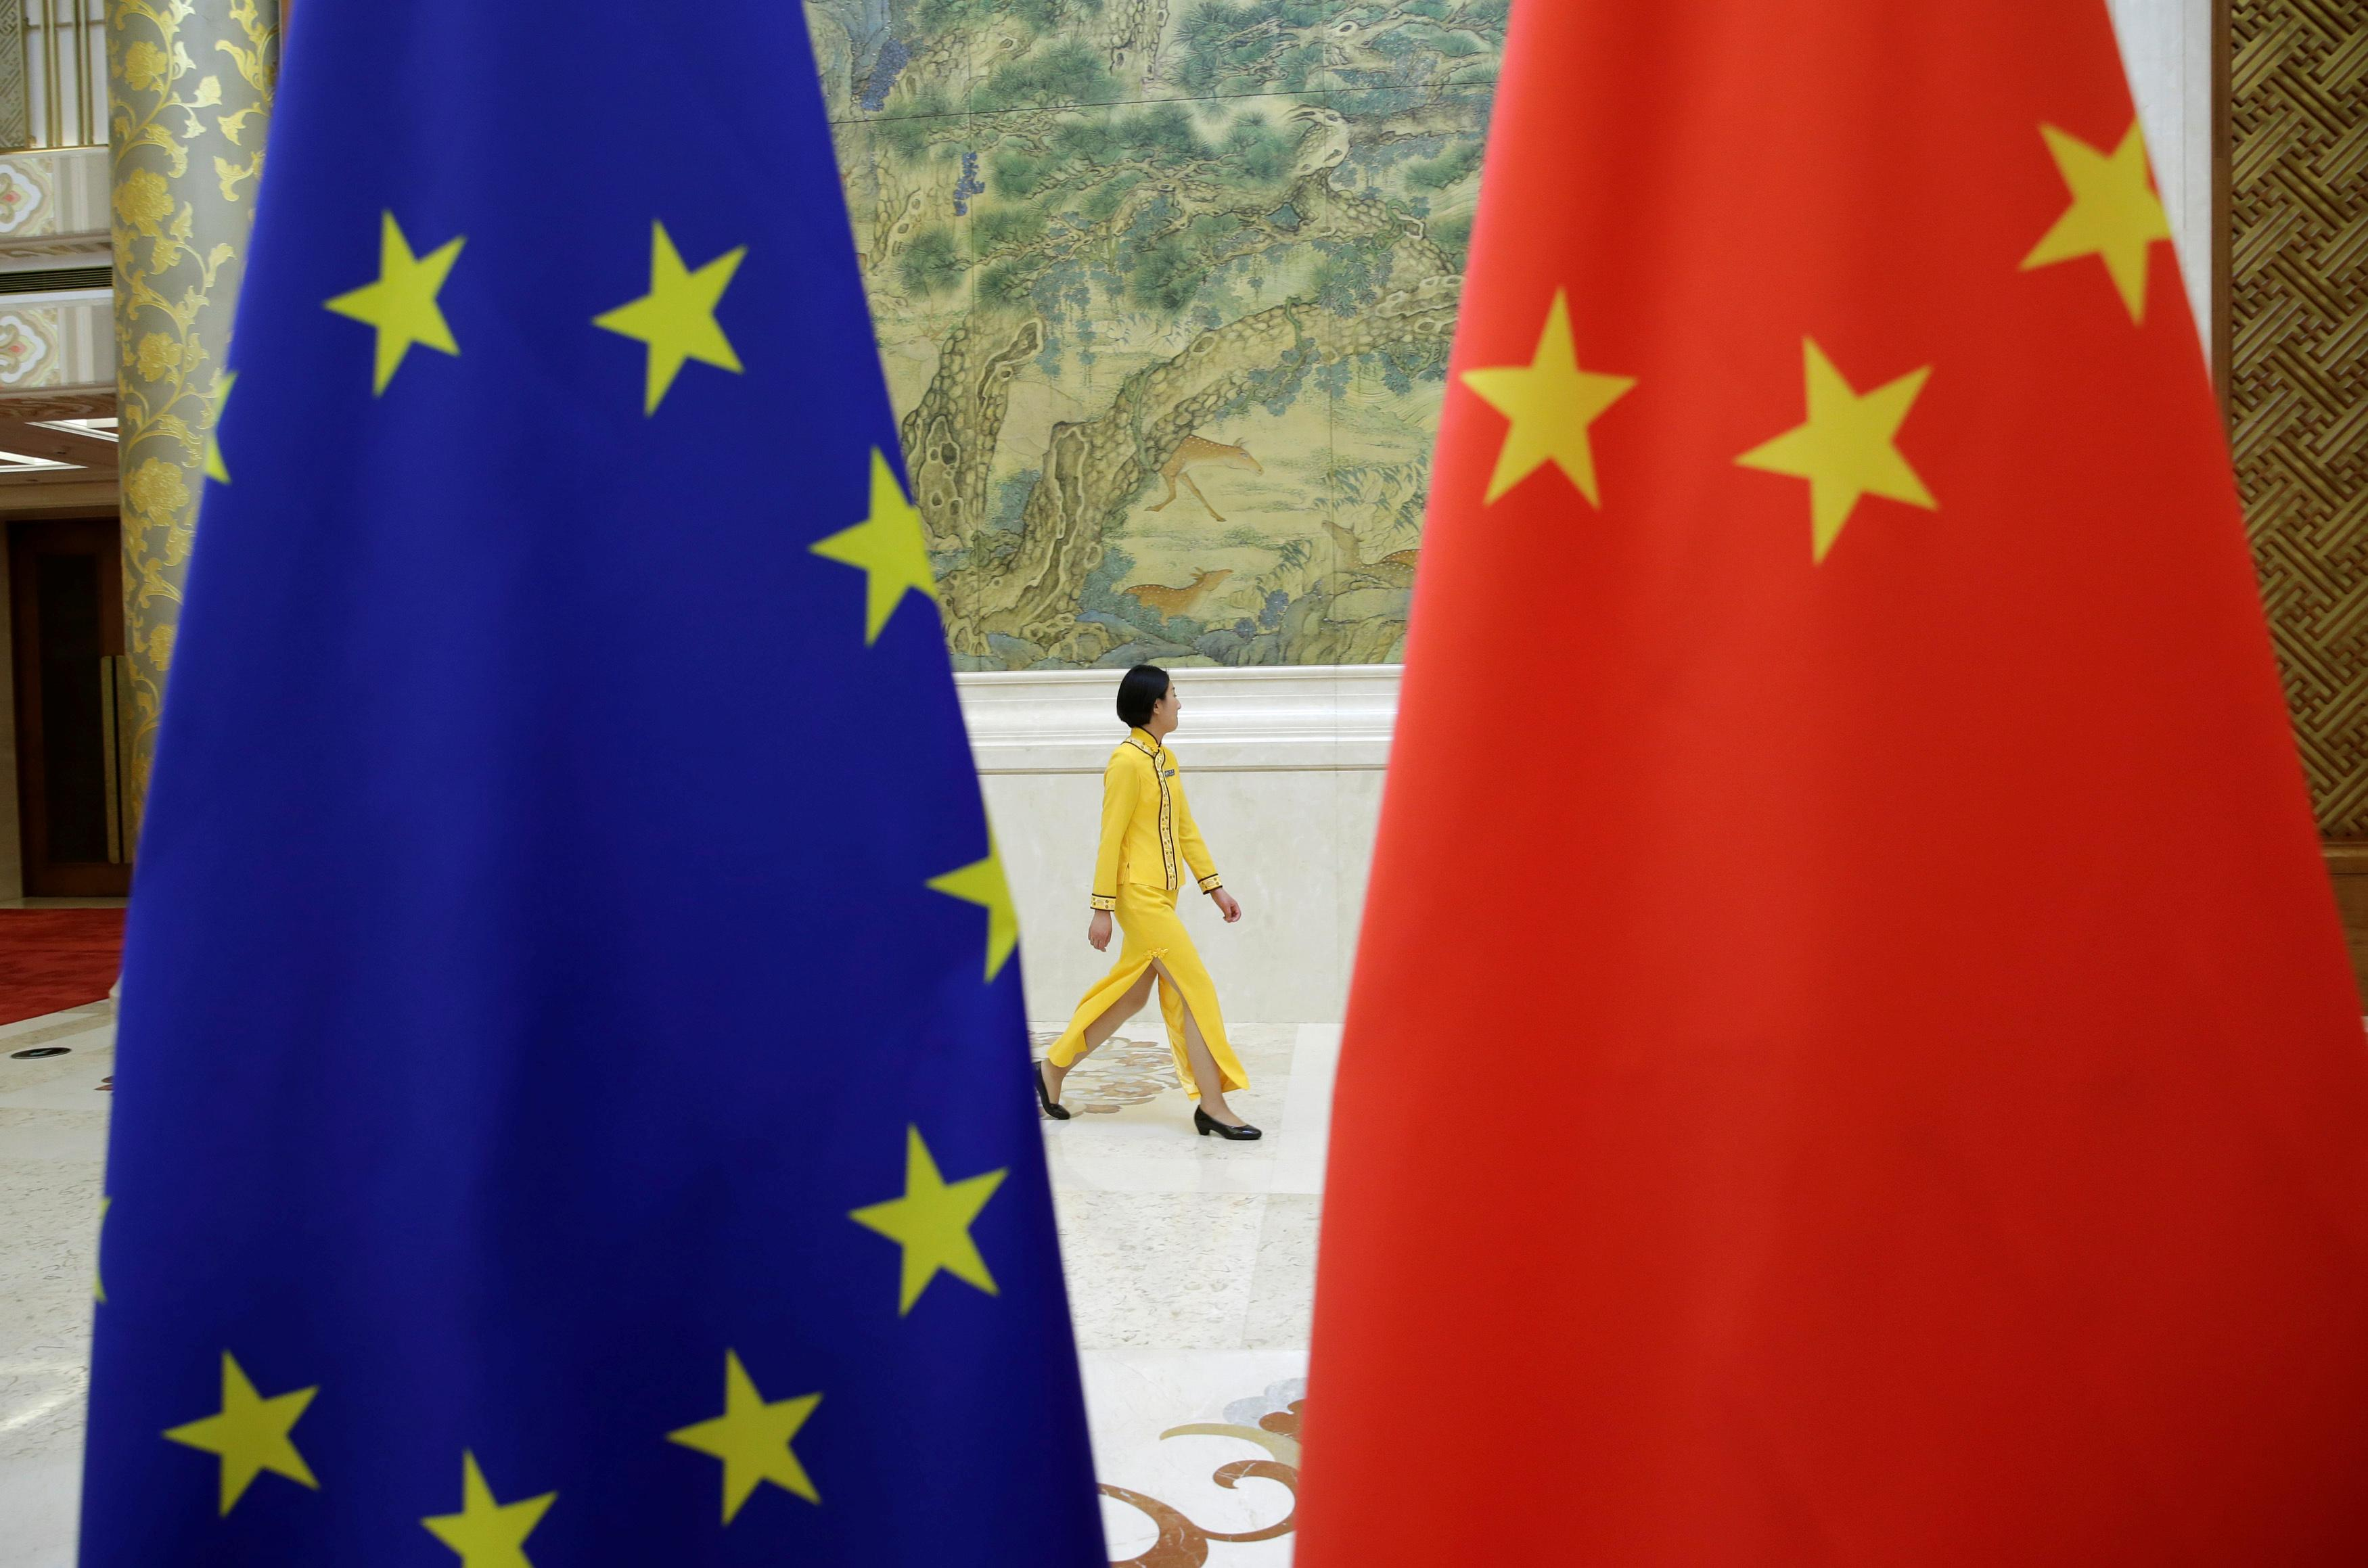 China agrees to discuss state subsidies to firms to allay EU concerns